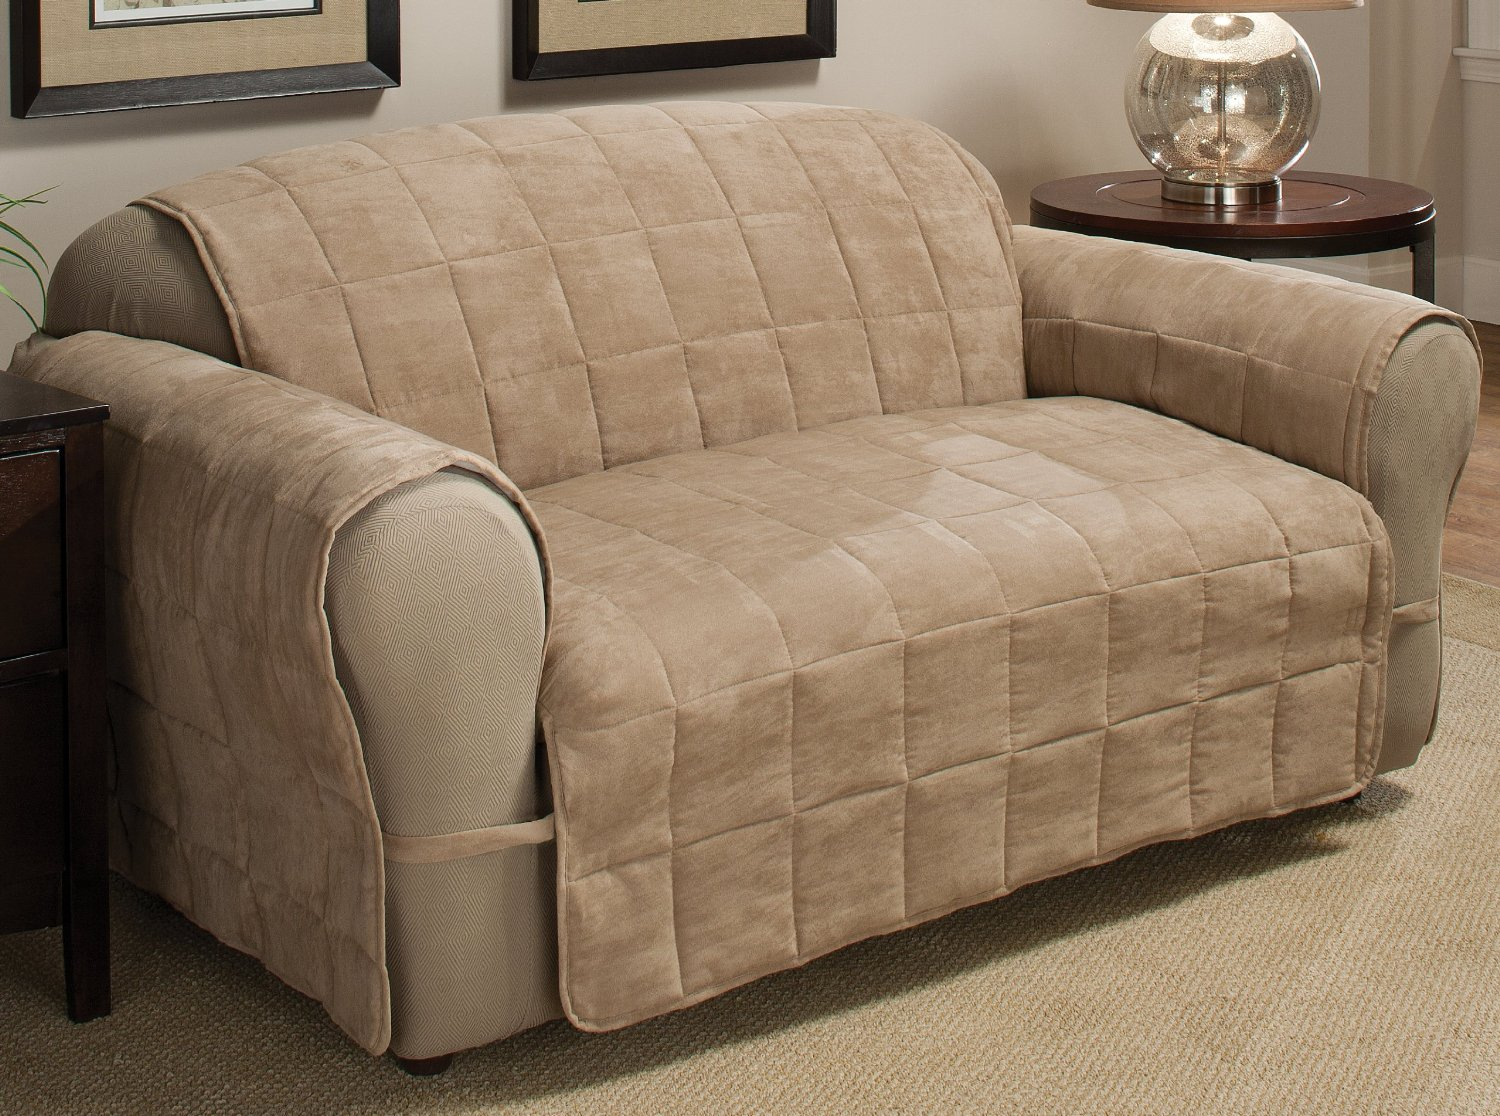 Best Slipcover For Leather Sofa Hereo